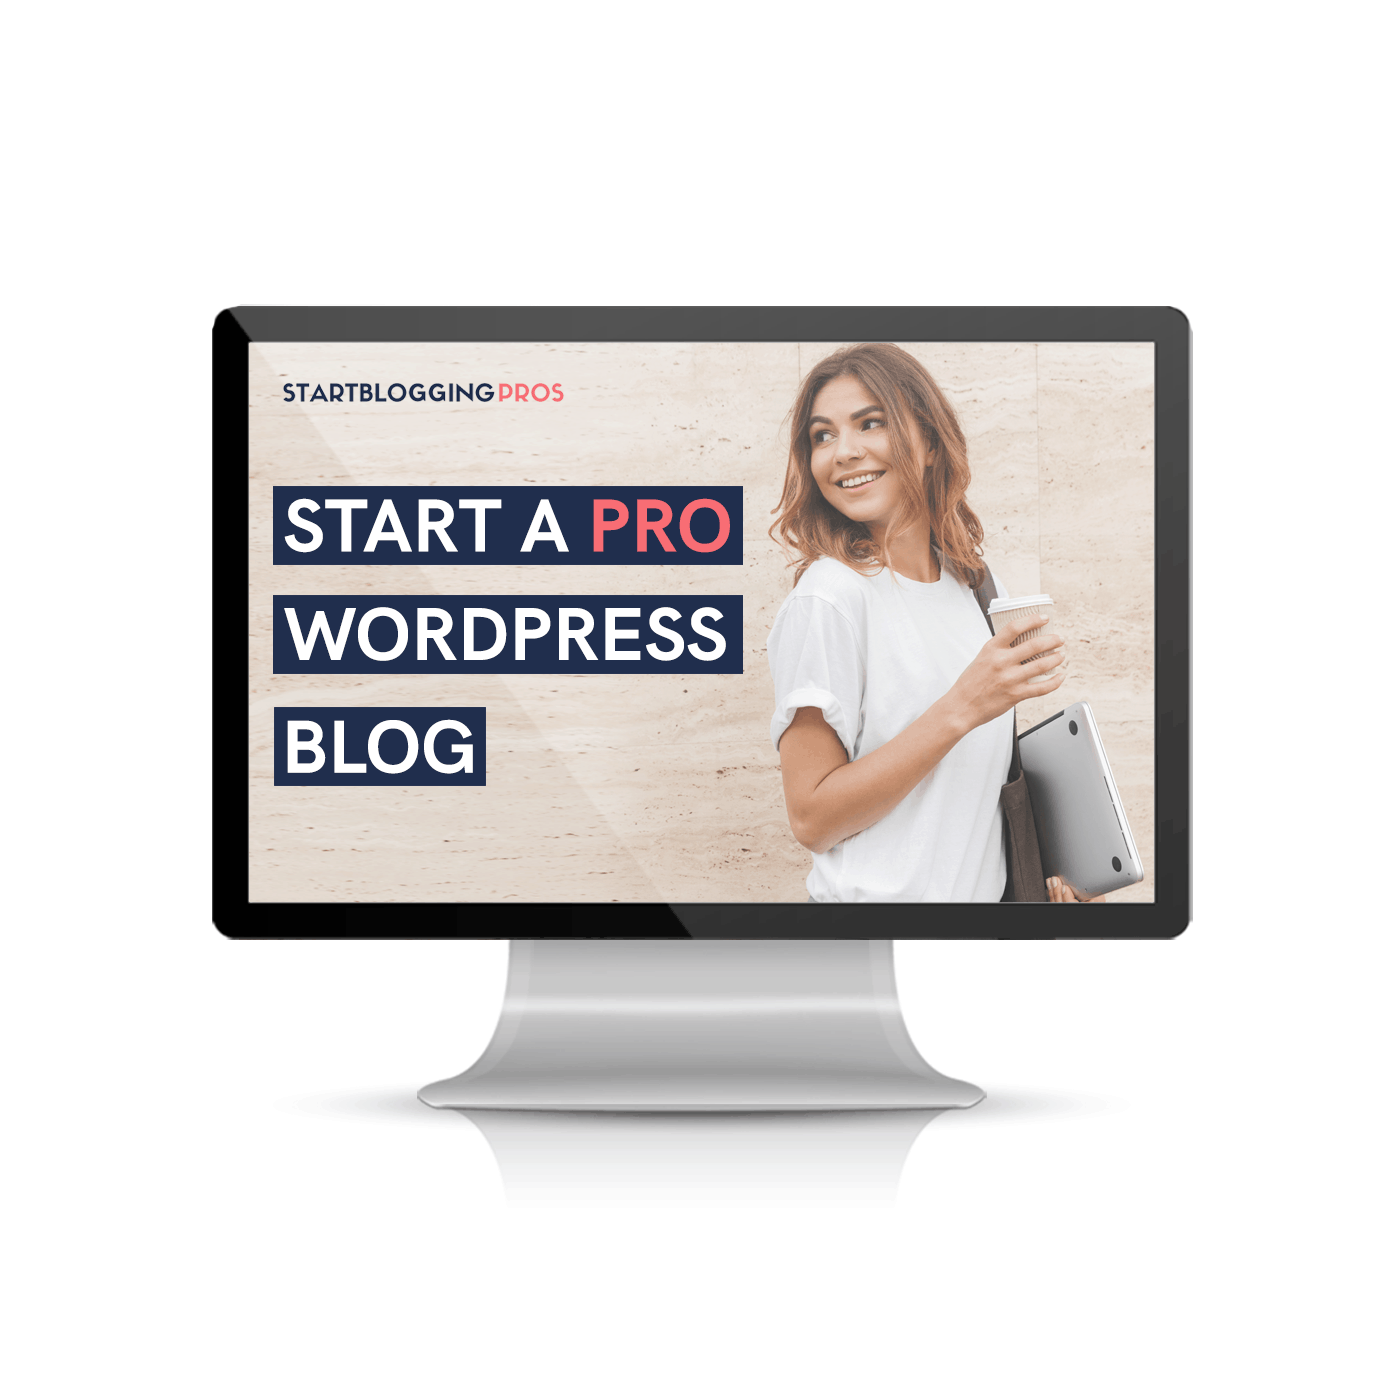 How to start a blog free blogging course learn wordpress blogging startbloggingpros.com